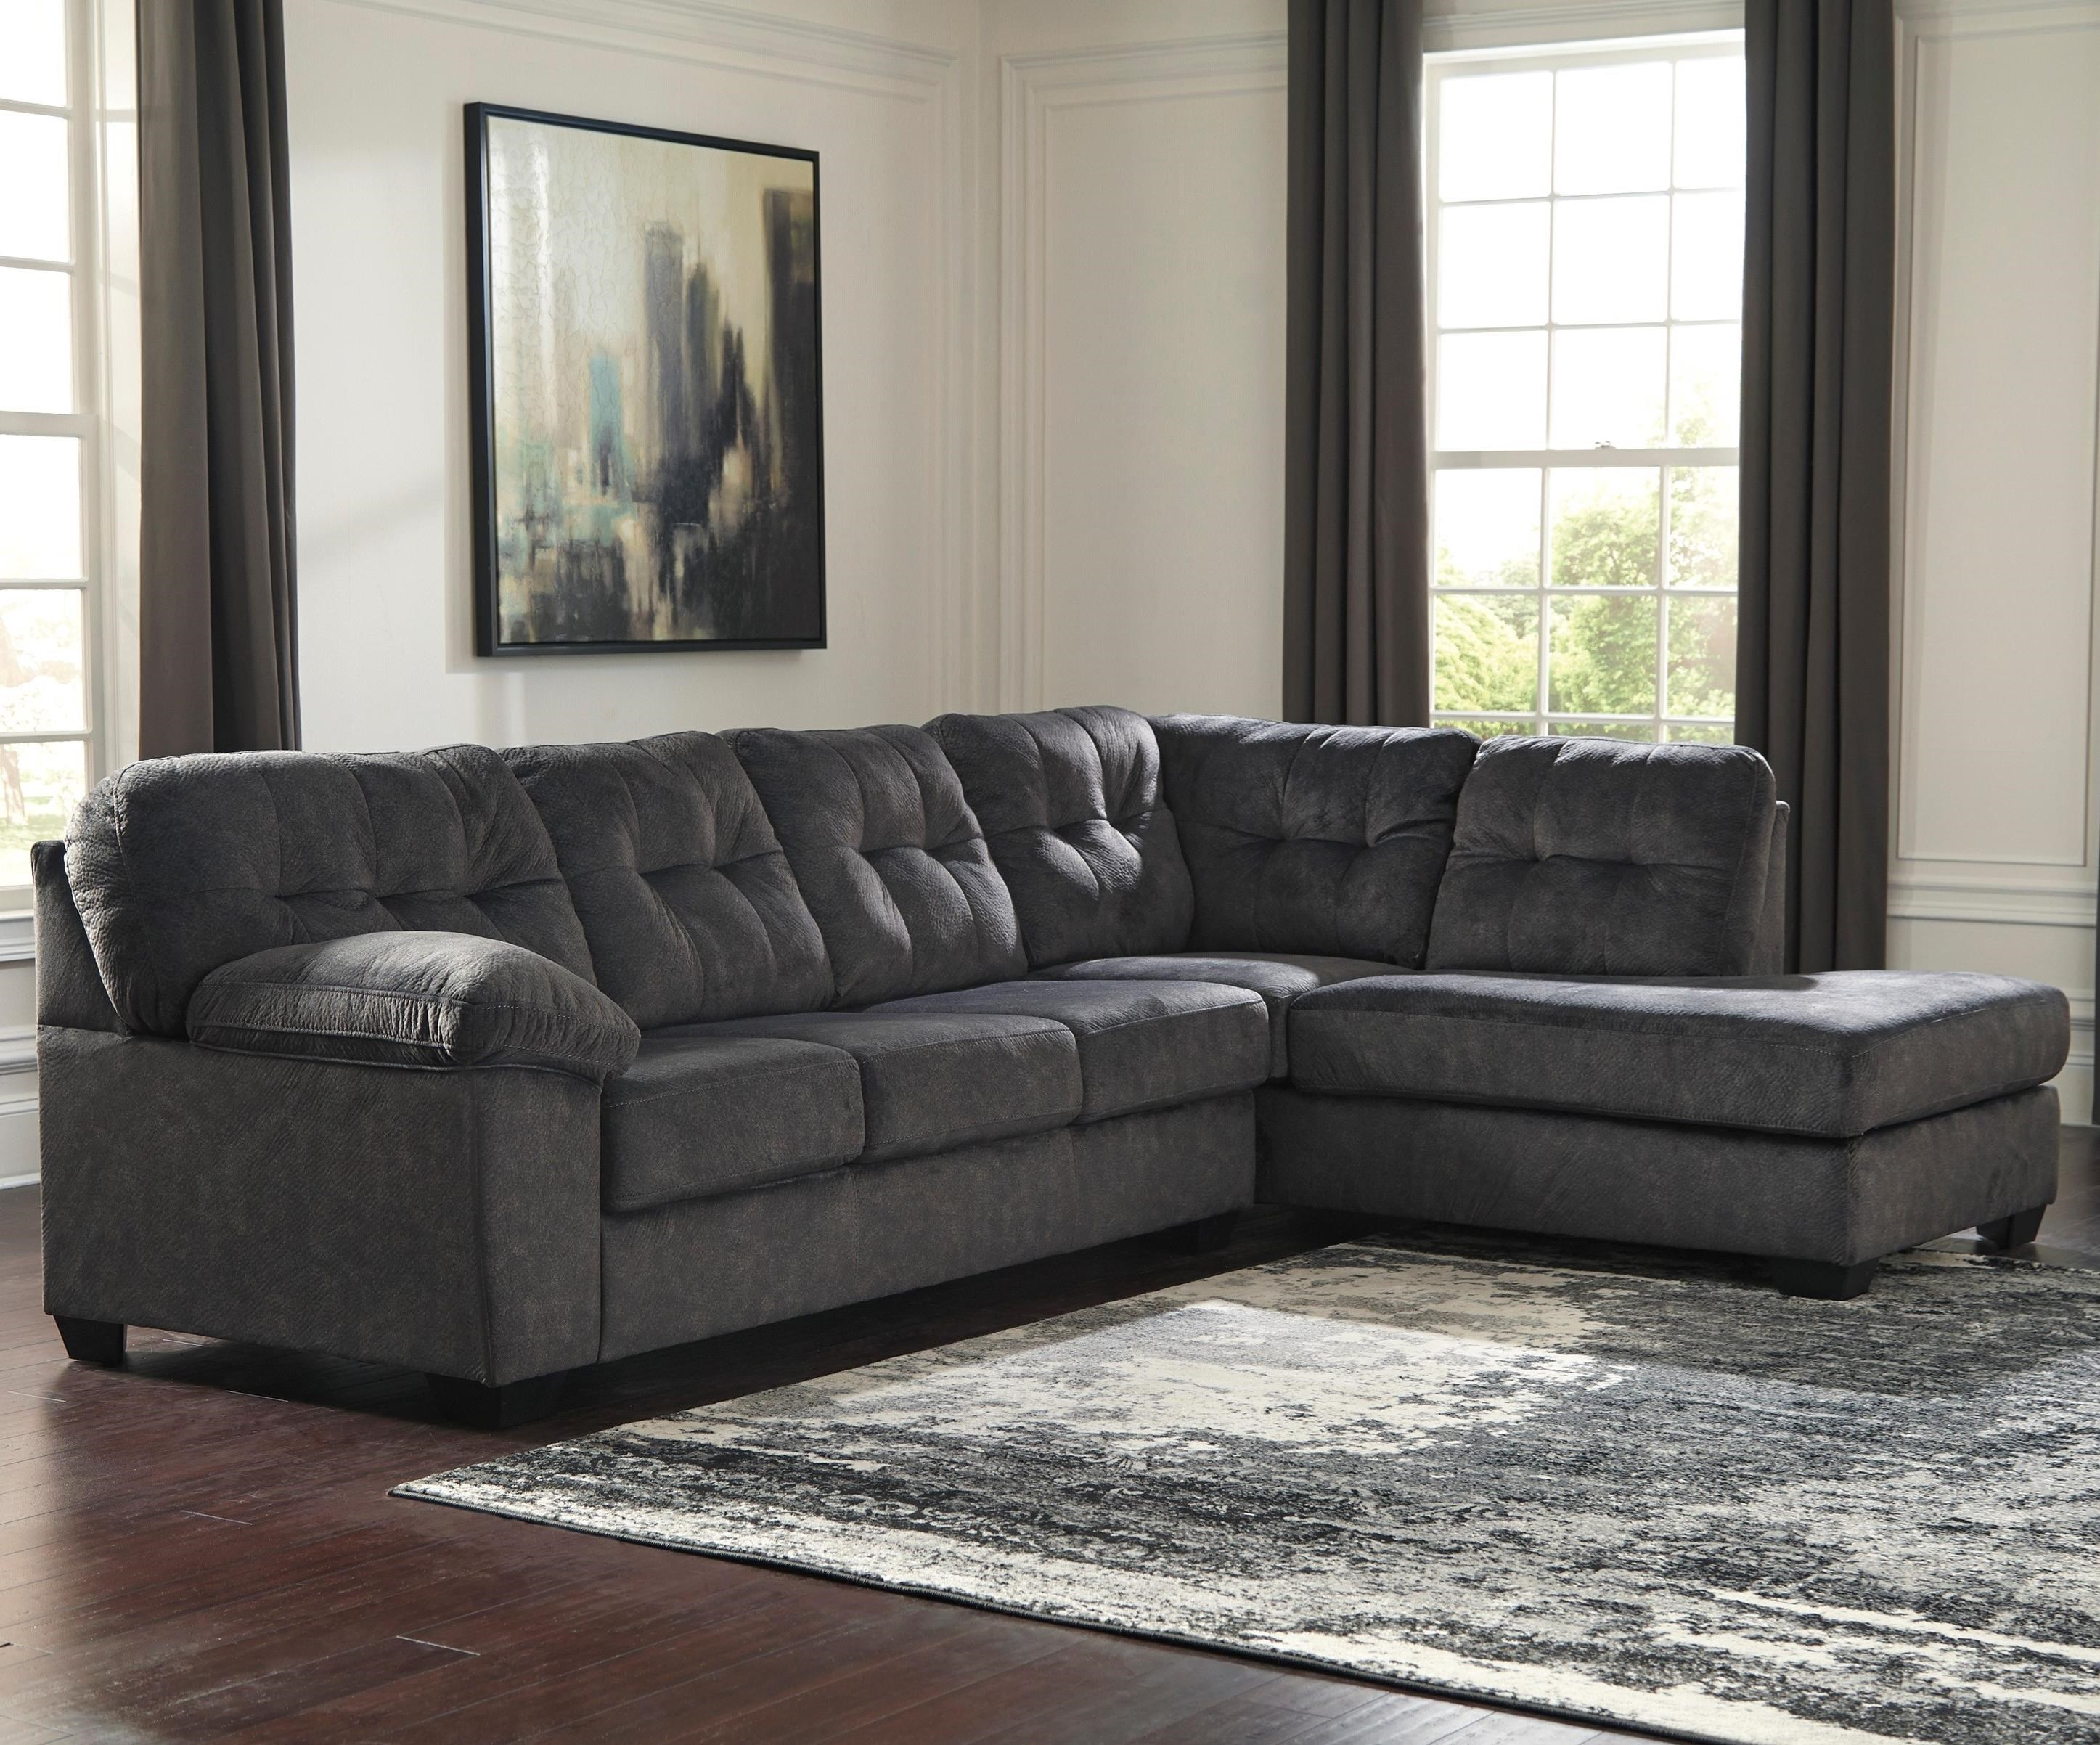 Sectional with Right Chaise & Memory Foam Queen Sleeper Mattress